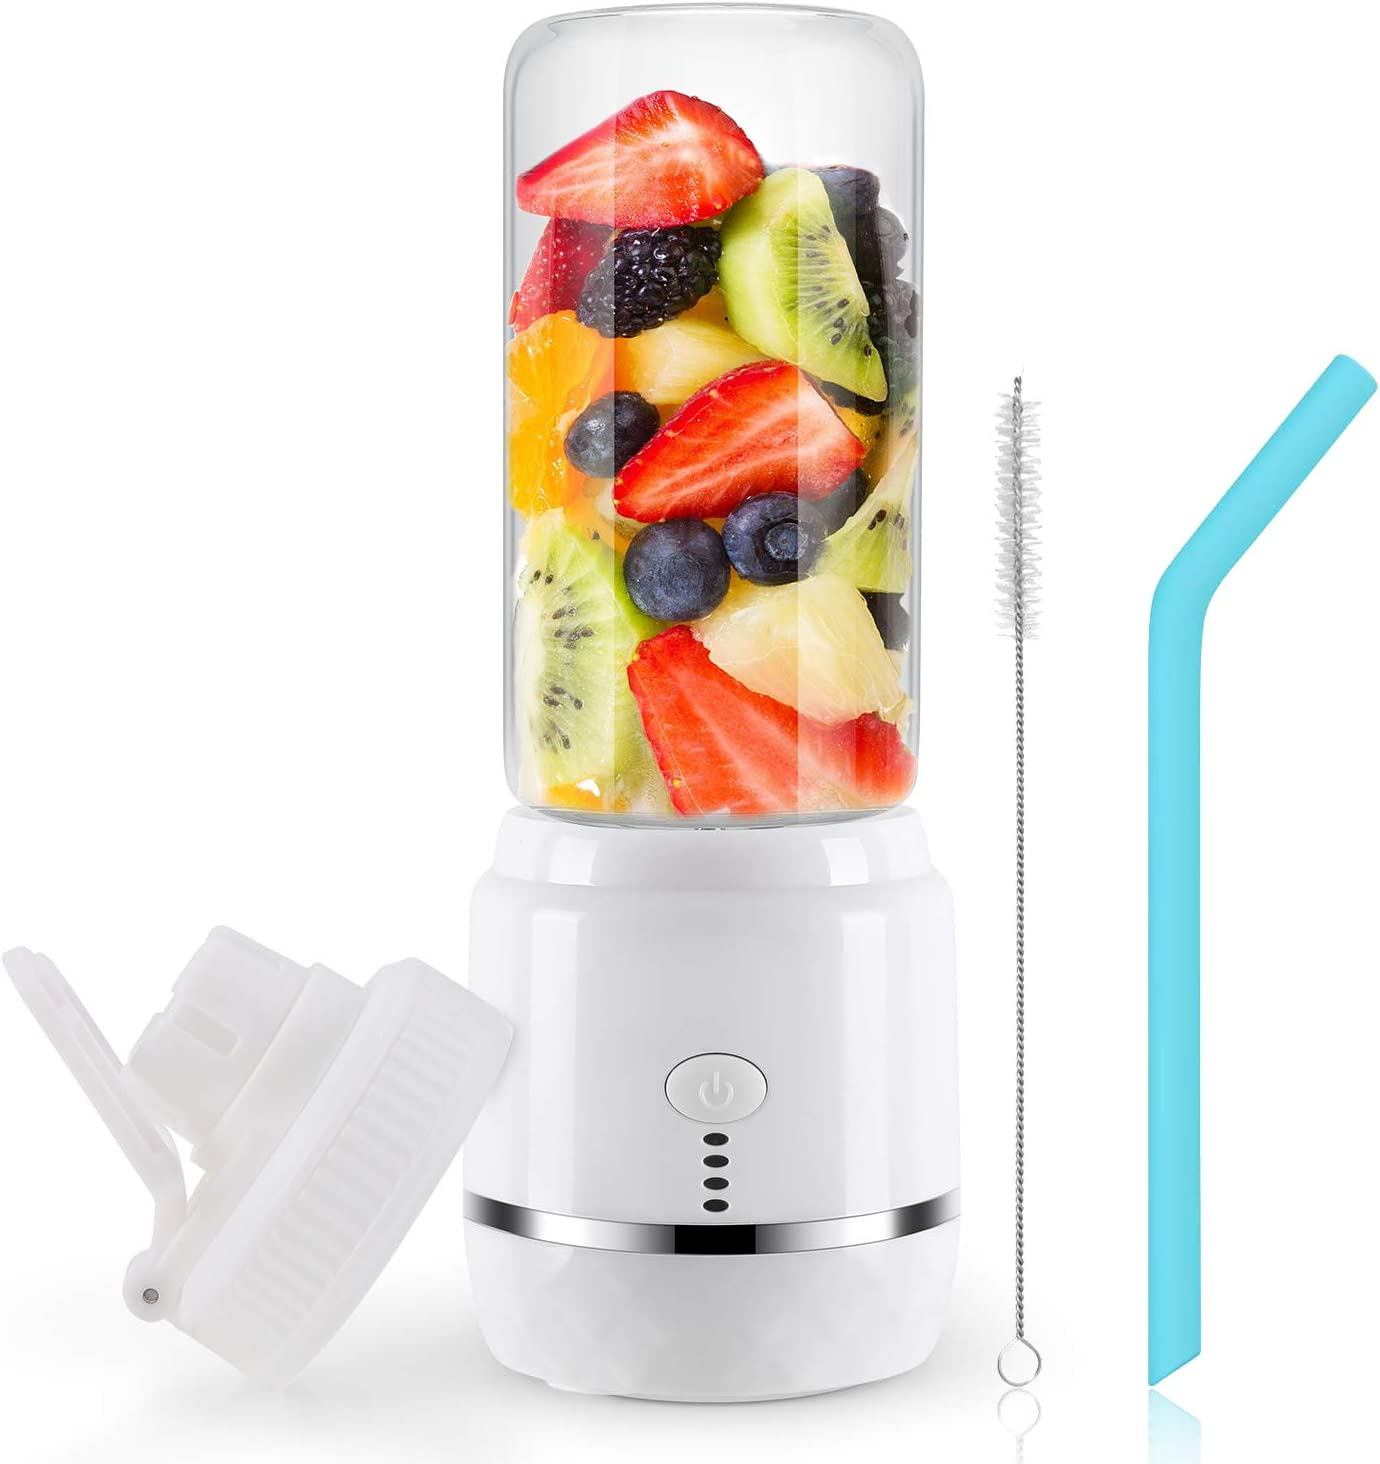 Portable Blender USB Rechargeable, Personal Blender Single Serve Blender, Small Blender Shakes Travel Blender Cup 400ml (FDA and BPA free) (white)…